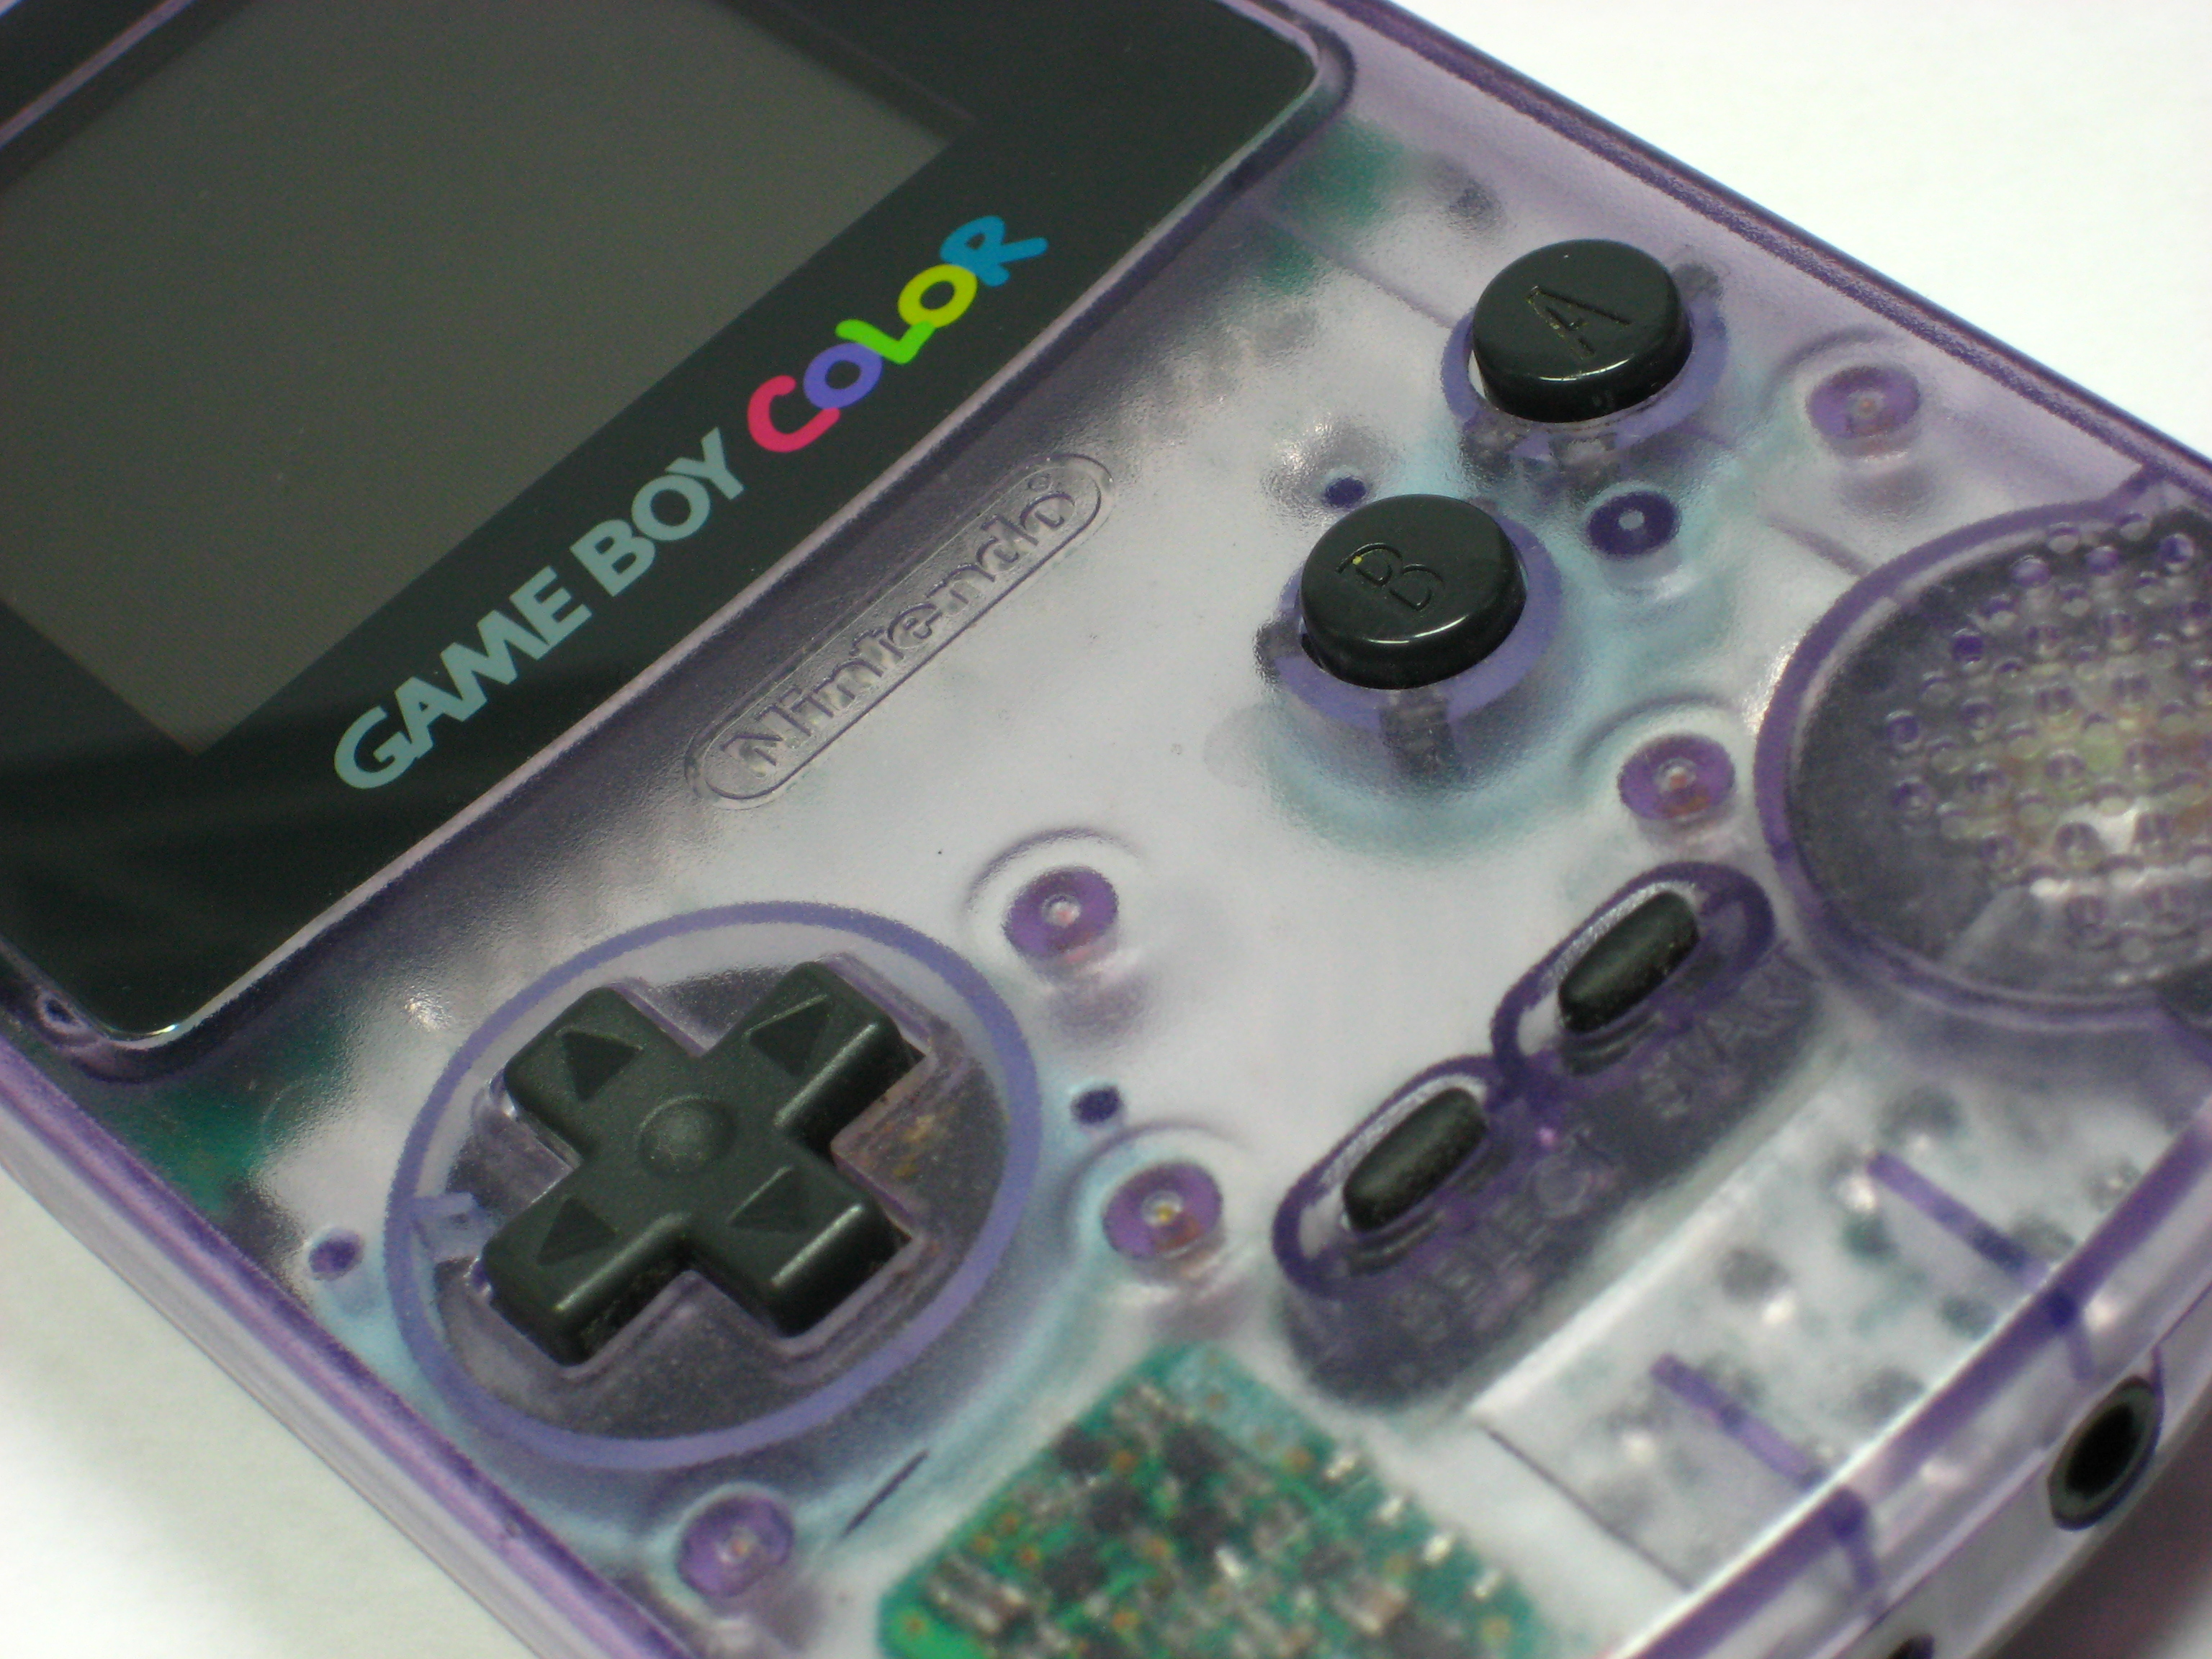 Purple gameboy color worth -  This Gameboy